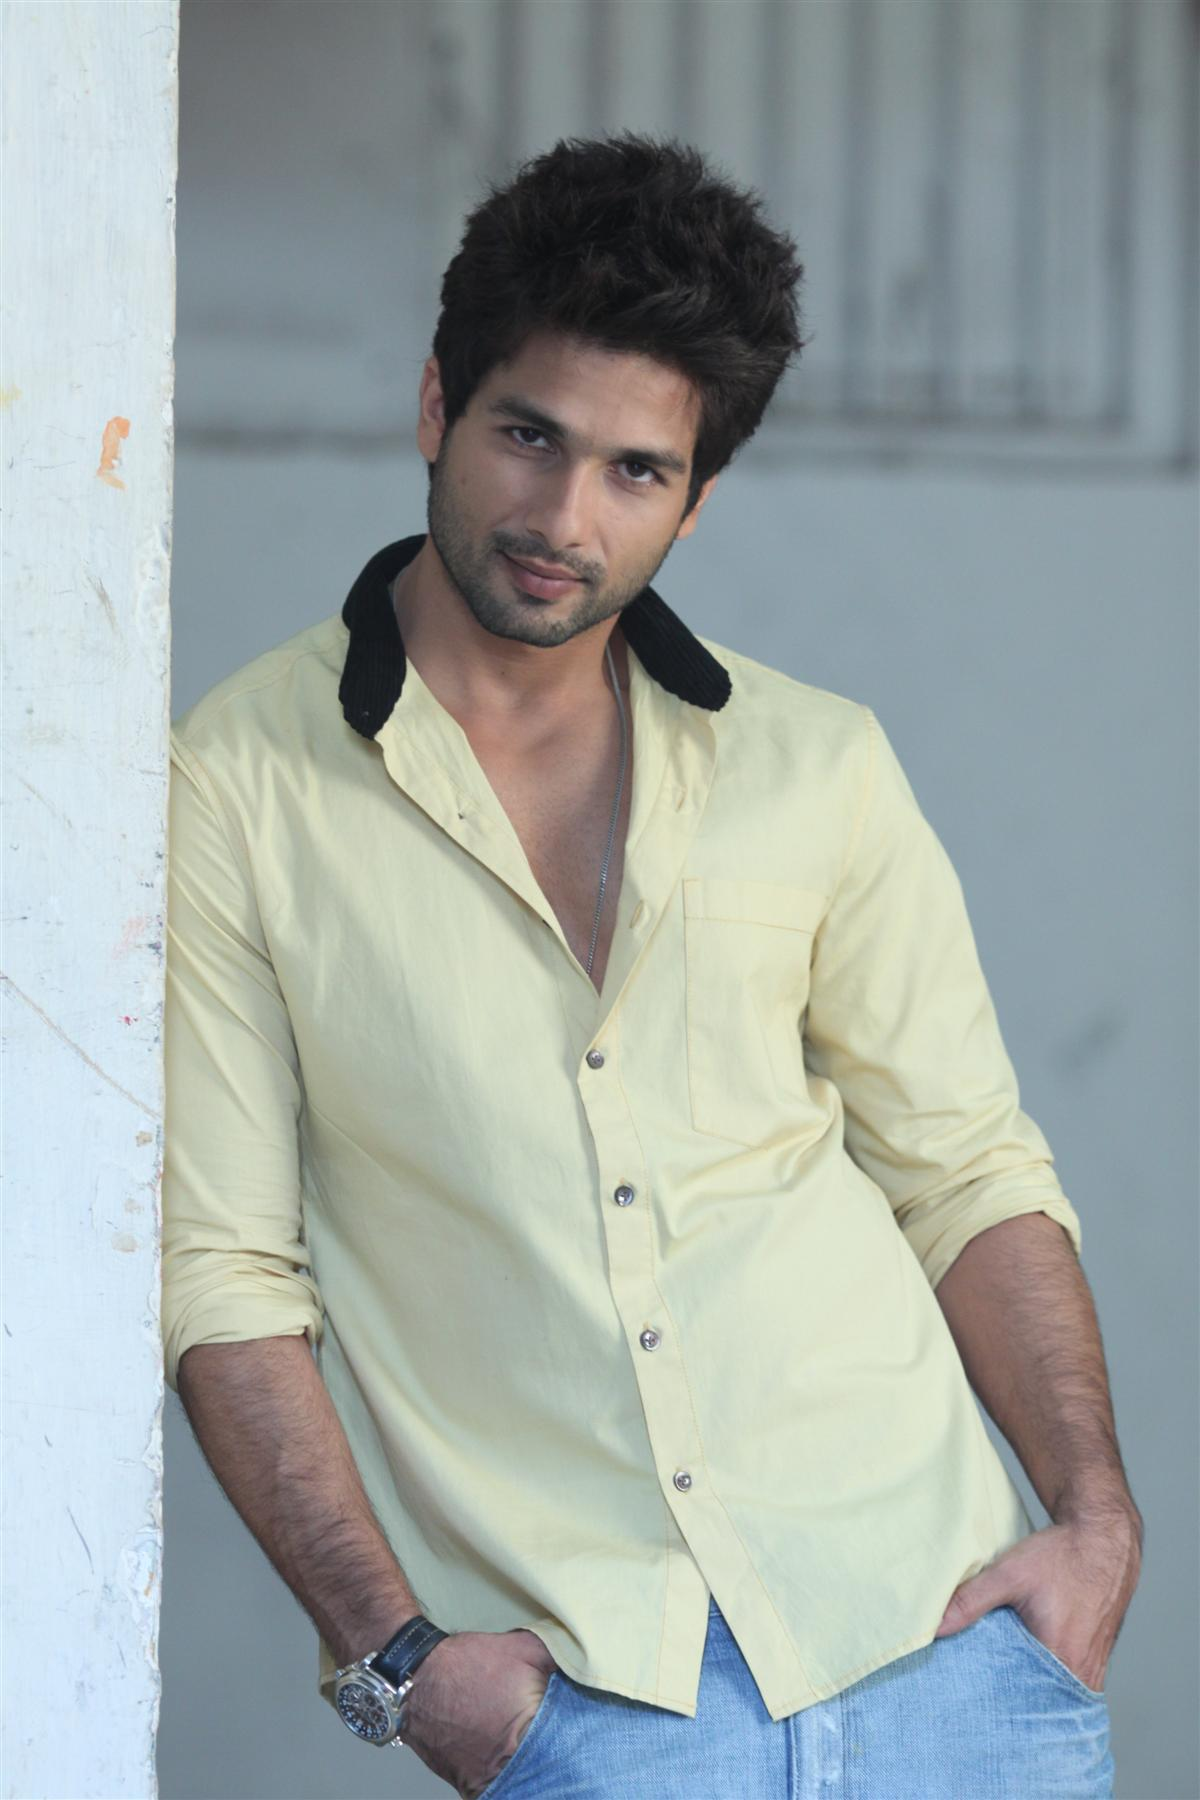 shahid kapoor photos images wallpapers pics download